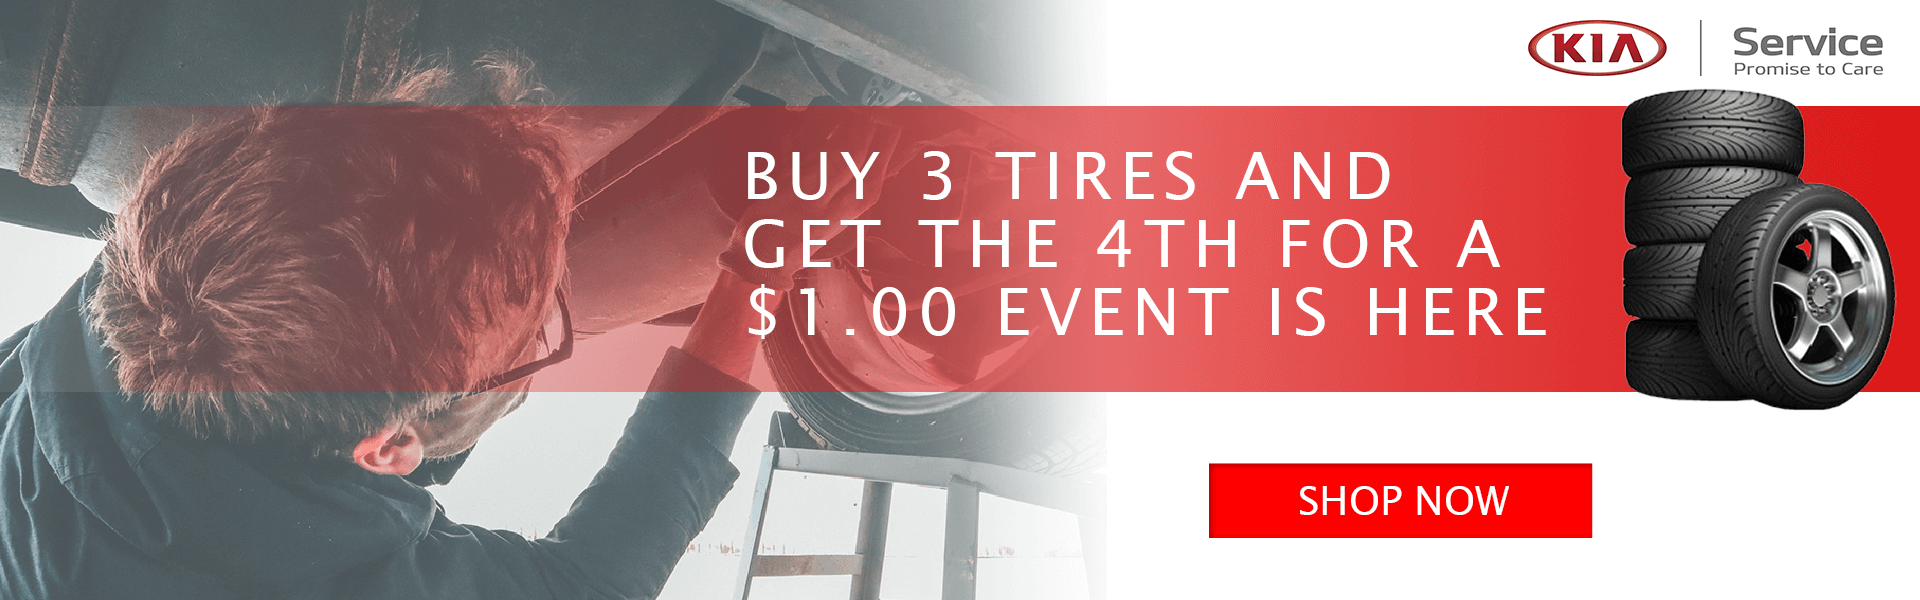 BUY 3 TIRES AND GET THE 4TH FOR A $1.00